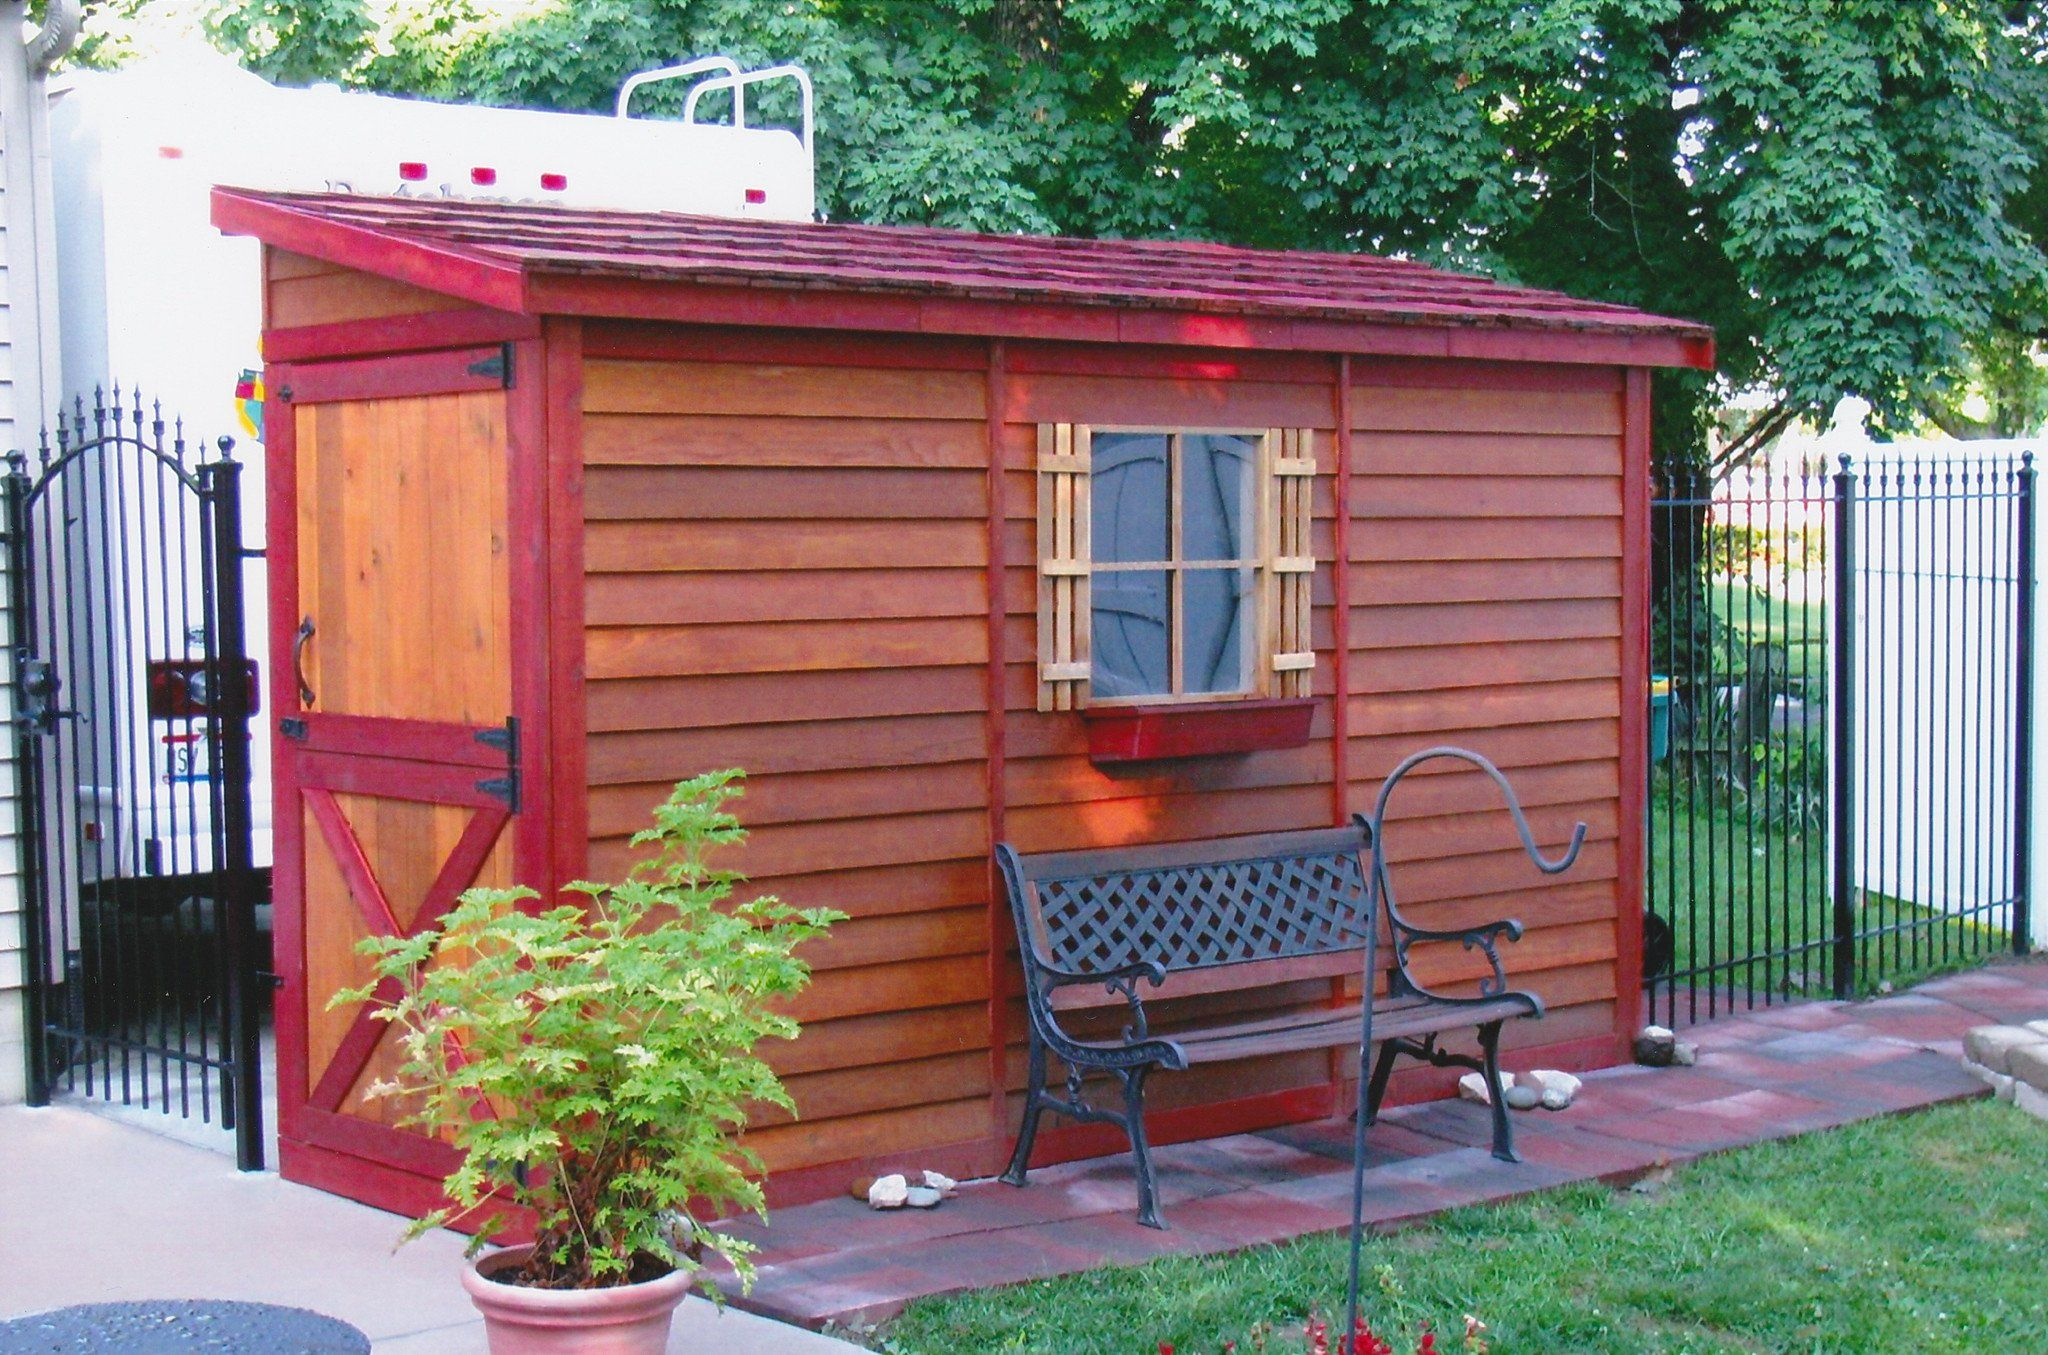 Bayside diy lean to storage sheds for sale building a